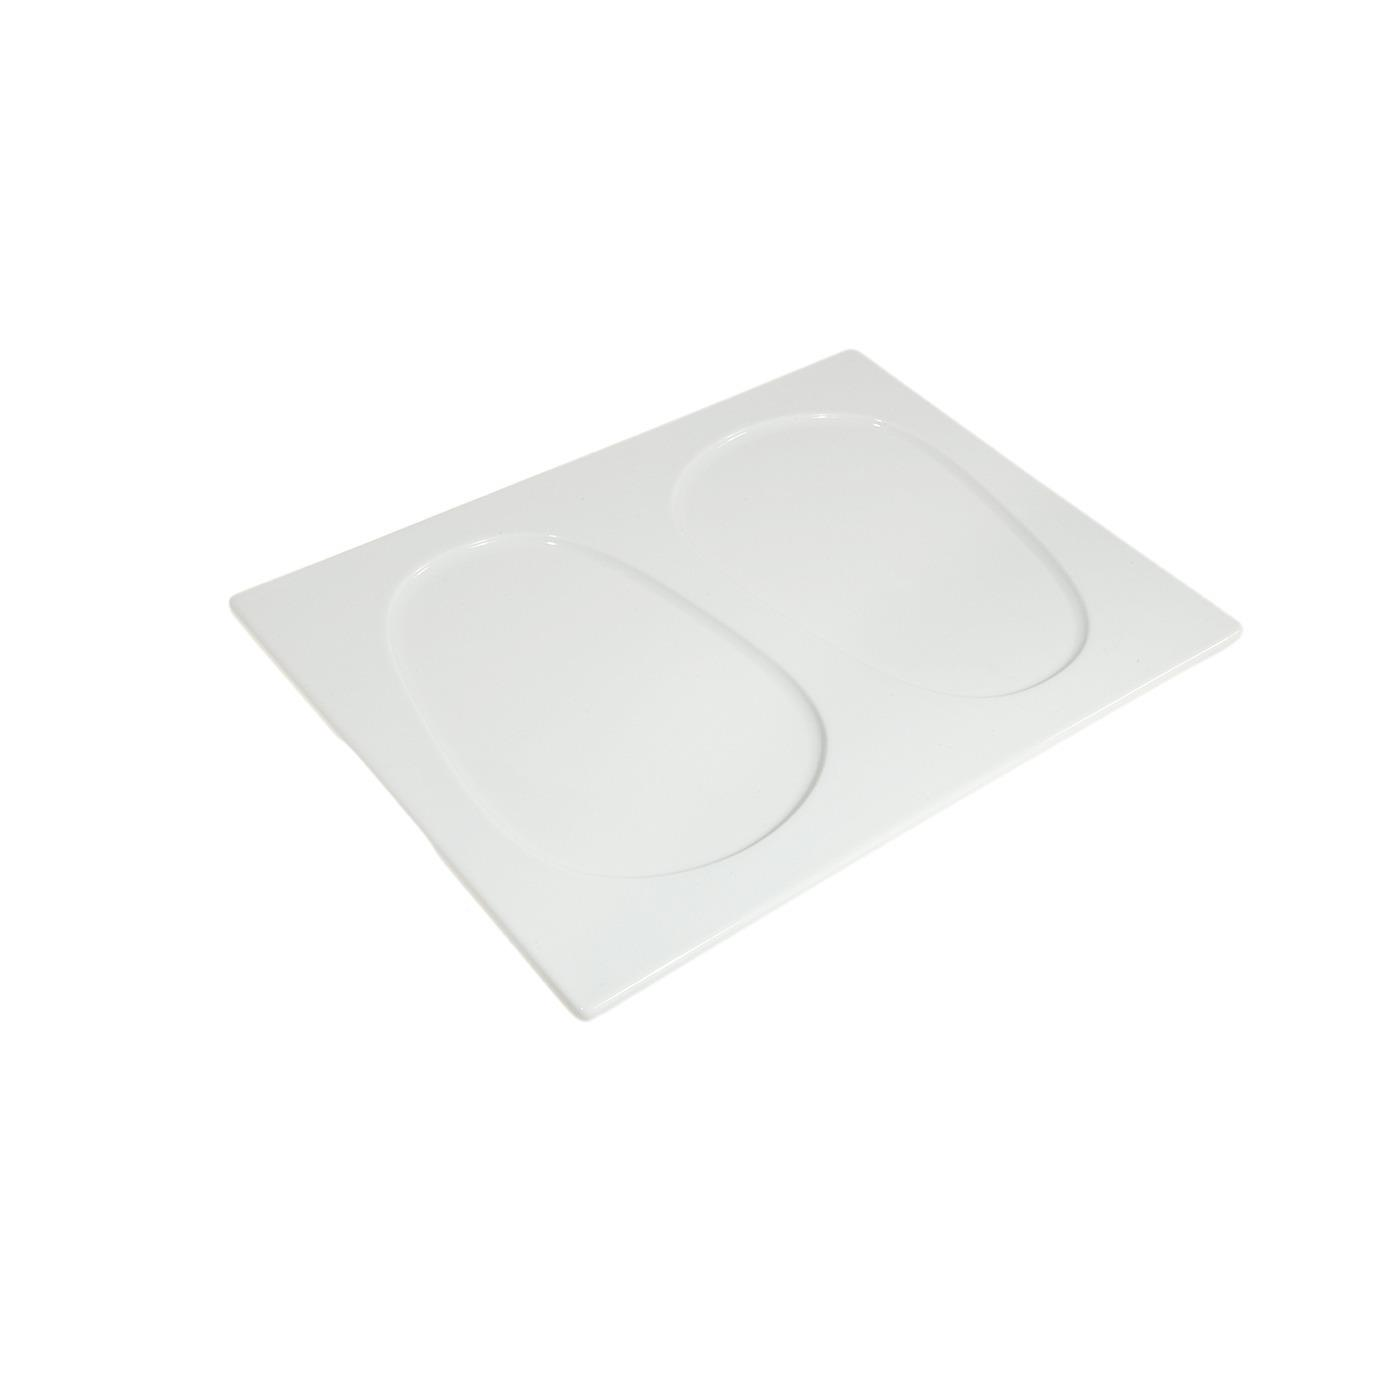 White Dual Well Plate 9